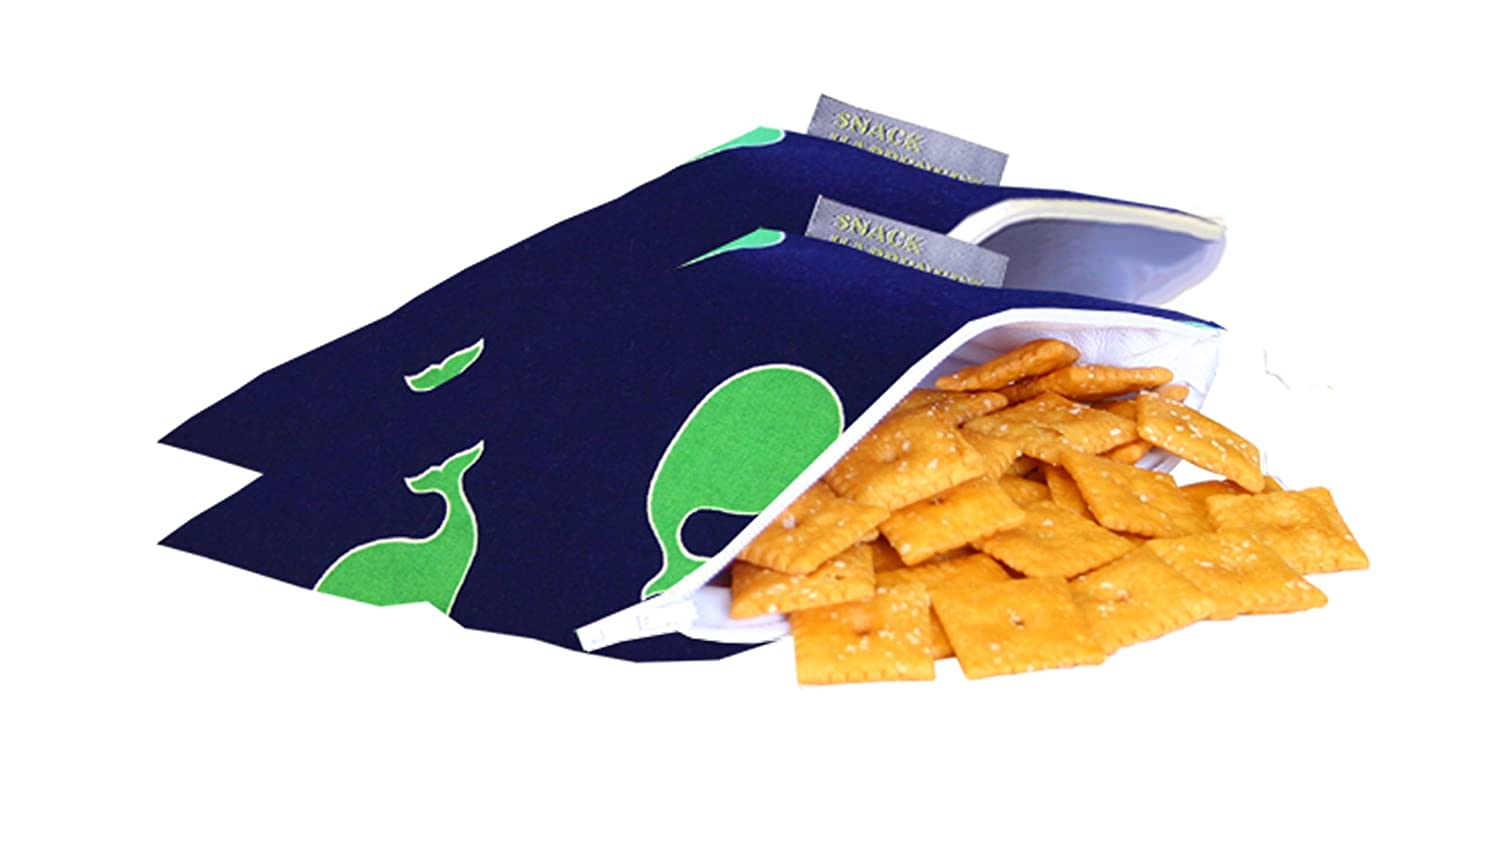 Llama Glama Itzy Ritzy IR-MSWB8311 Snack Happens Mini Reusable Snack and Everything Bag